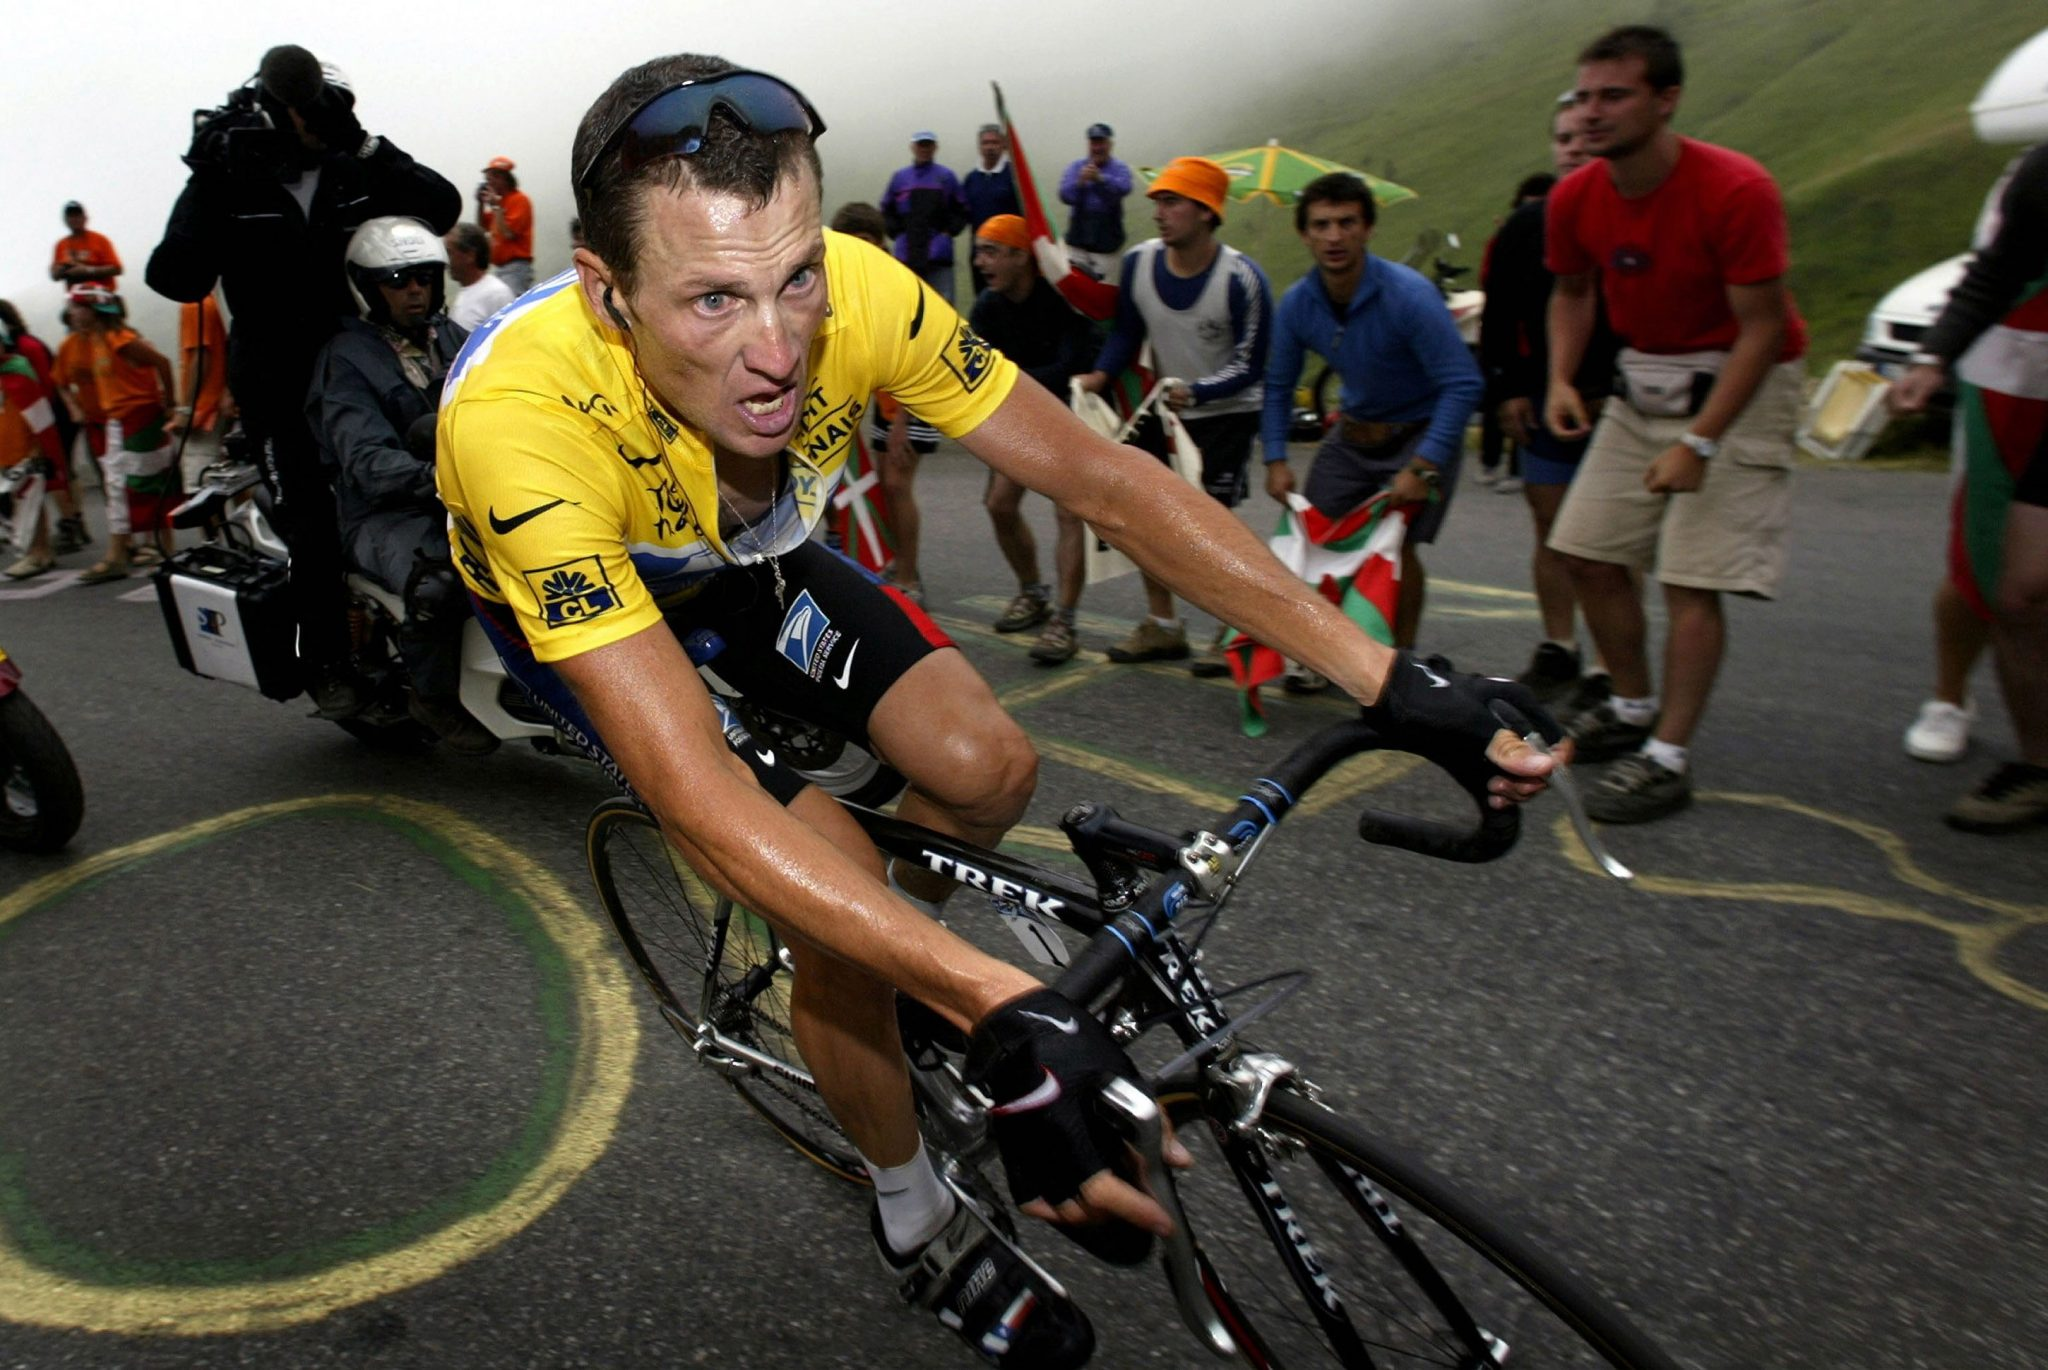 USDJ Reveals Why It's Targeting Lance Armstrong Alone in Lawsuit 3